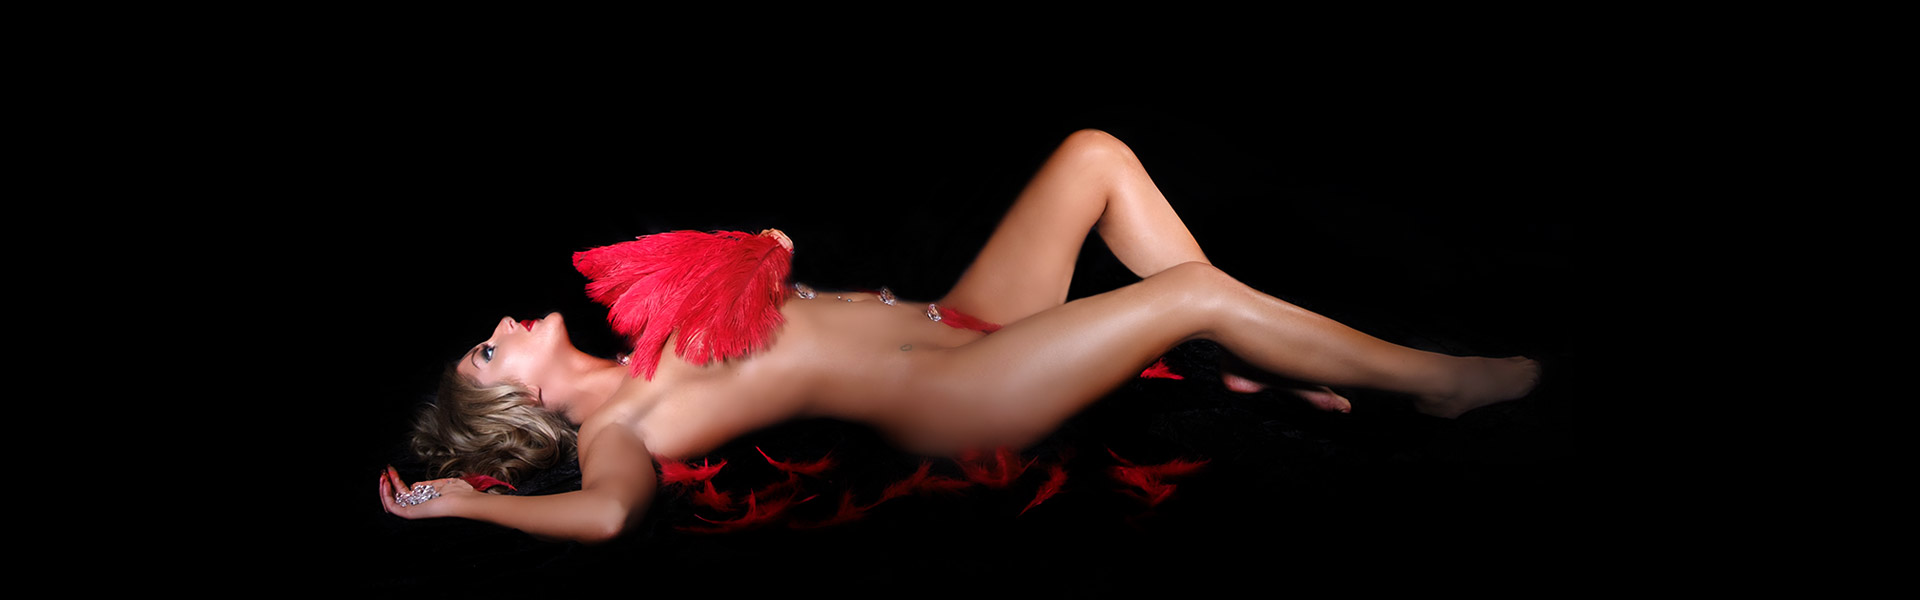 naturist erotic massage nakenbilder no